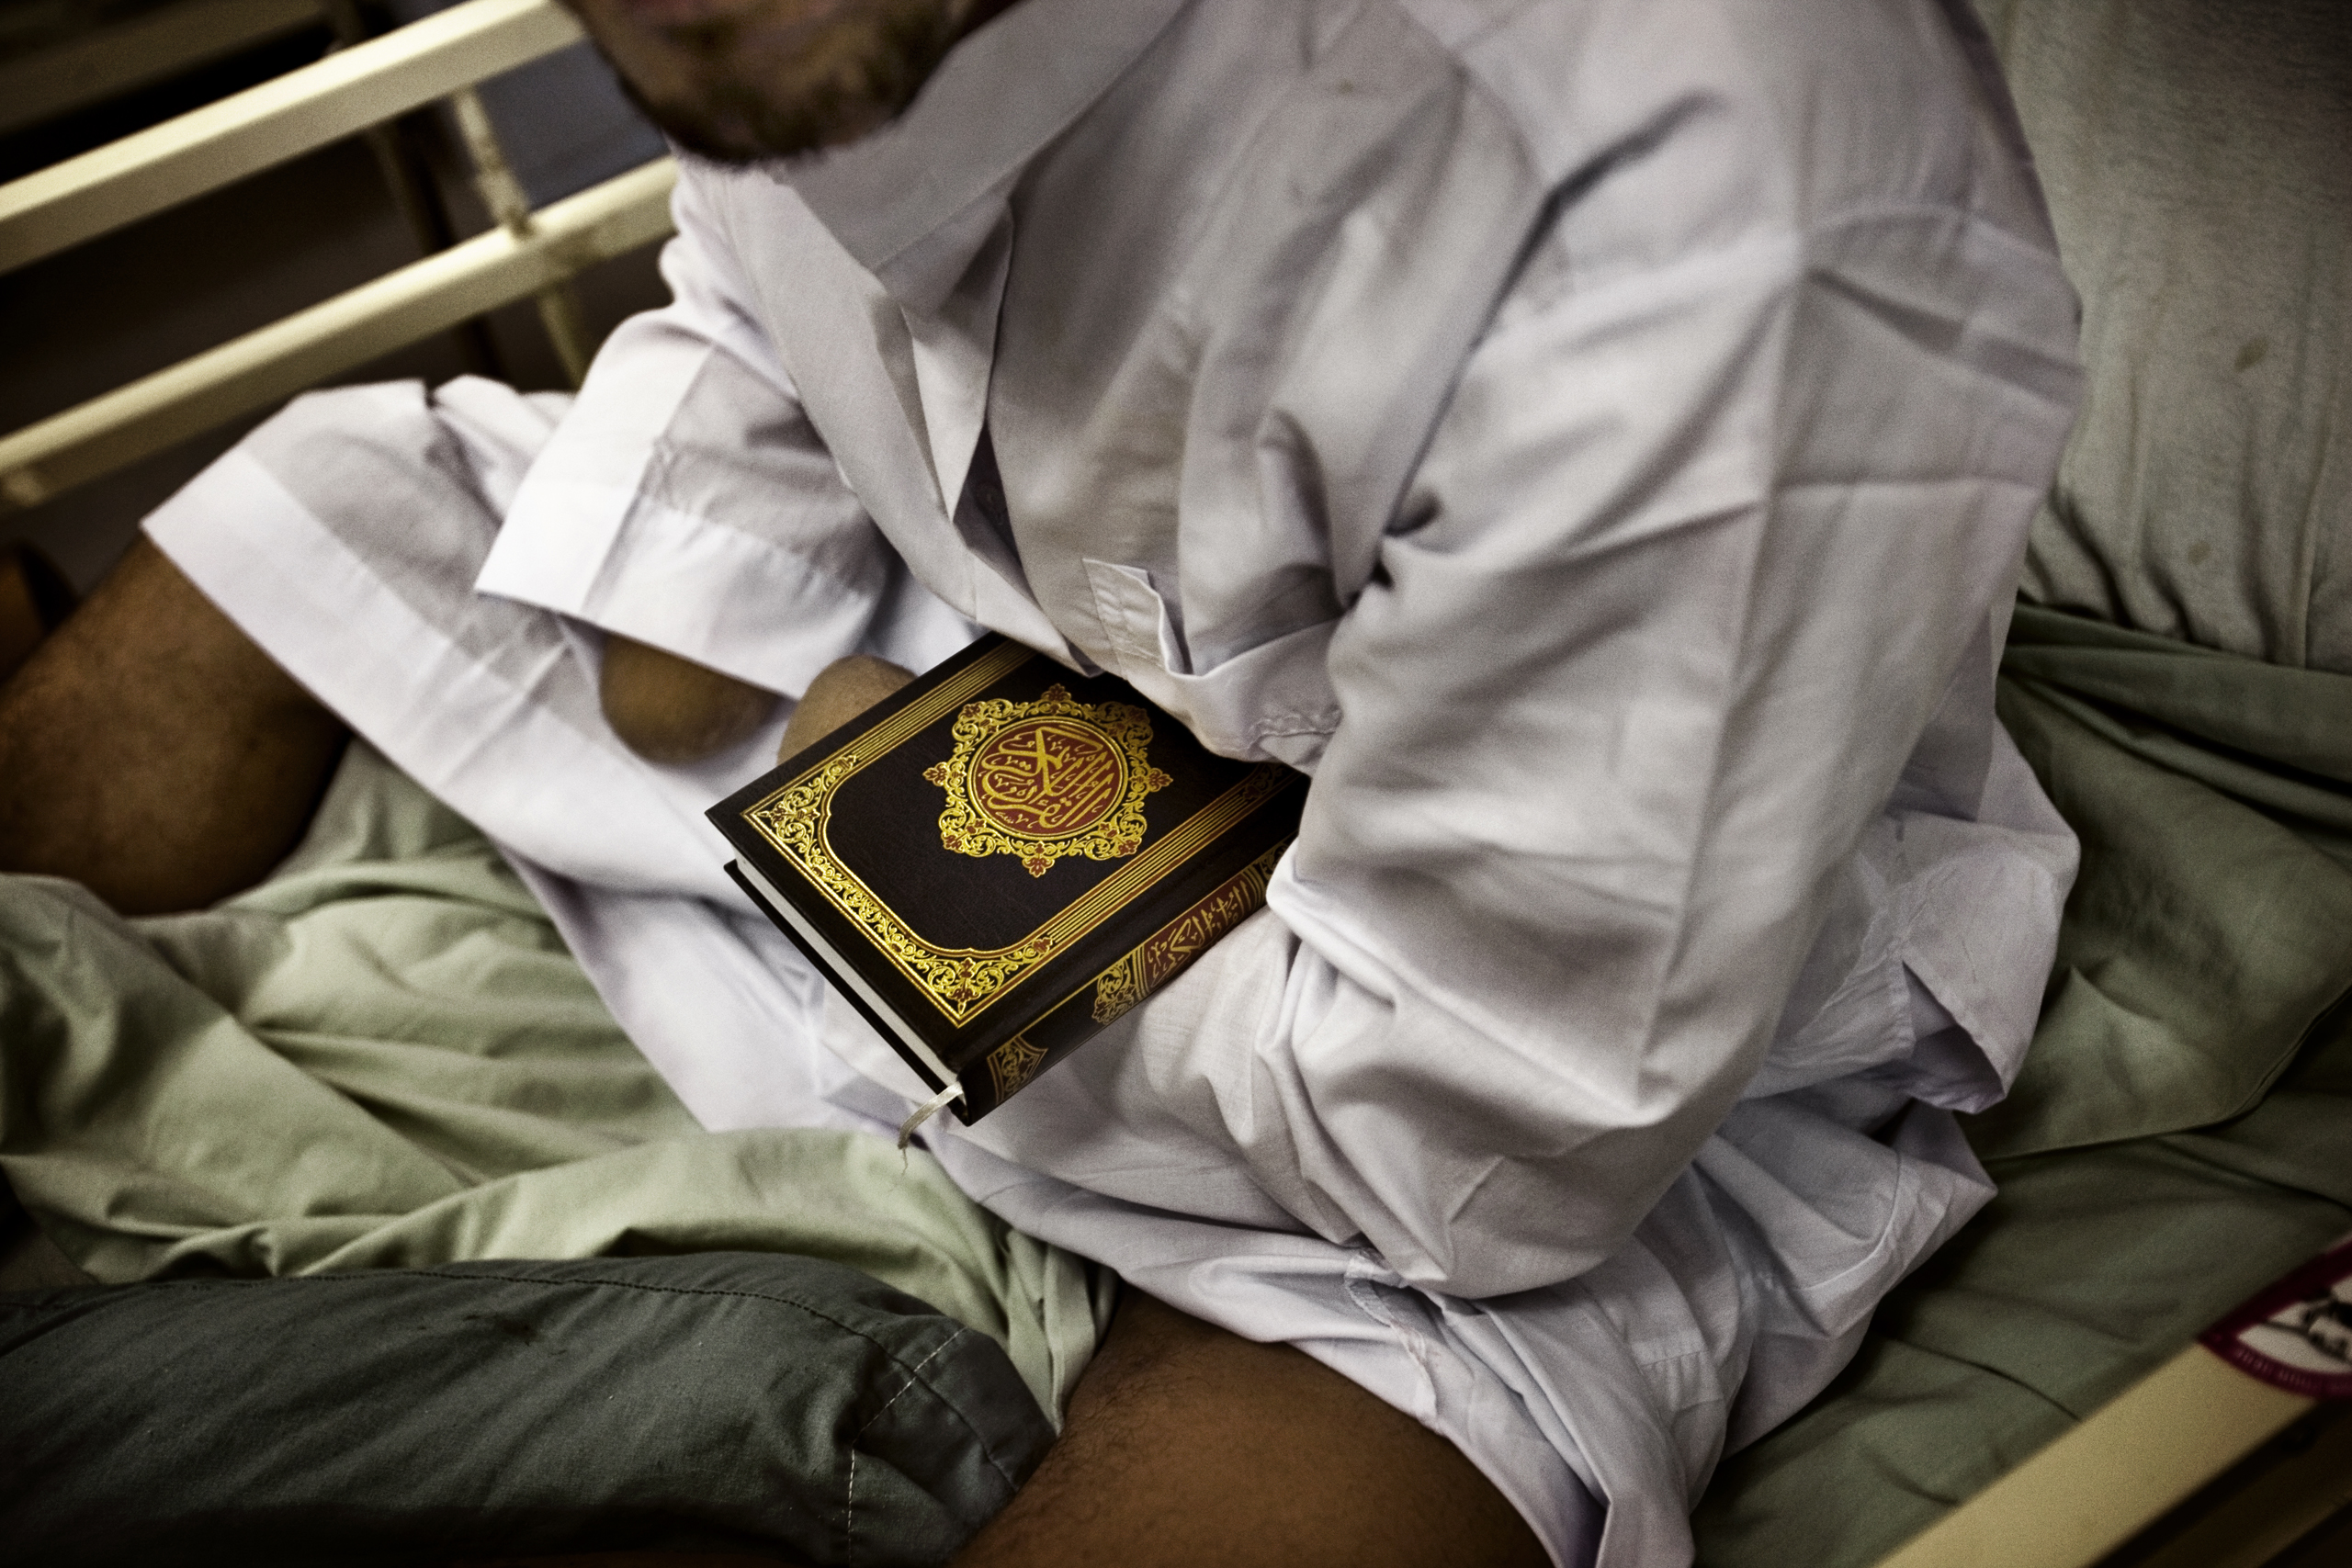 A detainee patient, who nurses say likely lost his hands while handling explosives, holds a Quran at the hospital at Camp Cropper, a U.S. military detention facility in Baghdad, July 26, 2008.